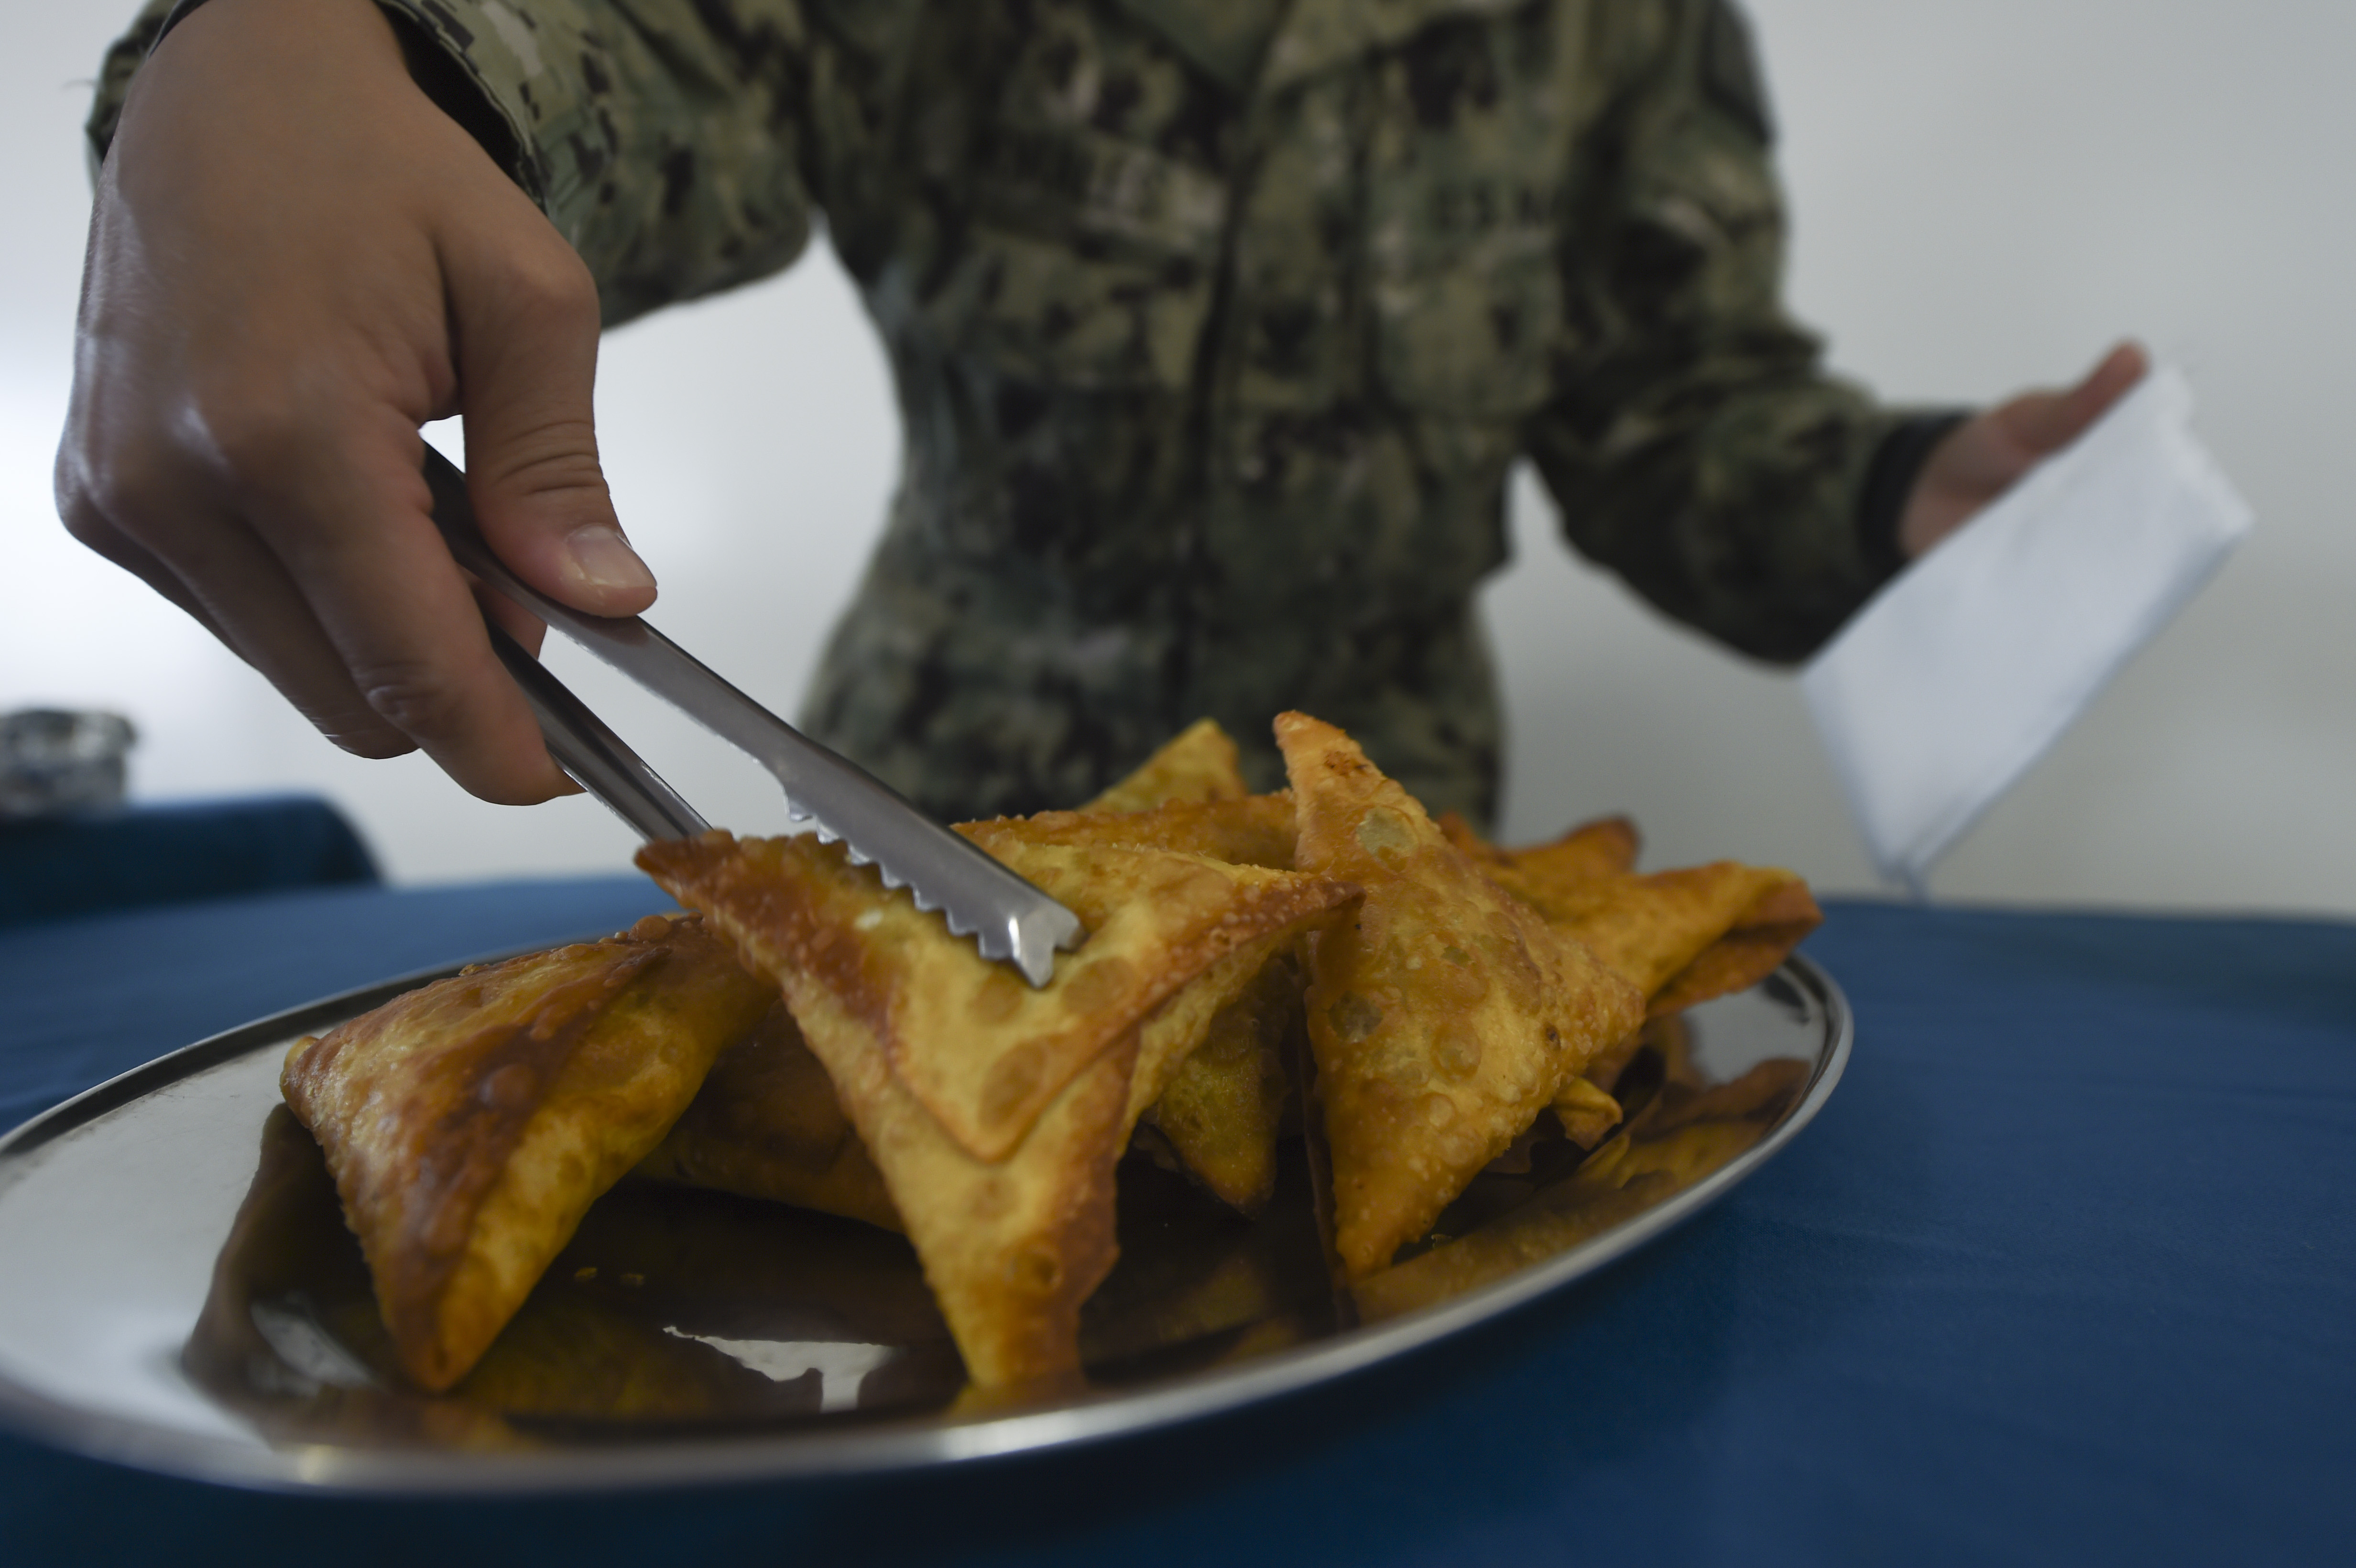 U.S. Navy Petty Officer 2nd Class Jocelyn Morales, Combined Joint Task Force – Horn of Africa religious affairs chaplain assistant, prepares a plate of samosas for a dual-service Iftar at the Mogadishu International Airport in Mogadishu, Somalia, June 5, 2017. Iftar is the evening meal when Muslims end their daily Ramadan fast at sunset.(U.S. Air Force photo by Staff Sgt. Eboni Prince)